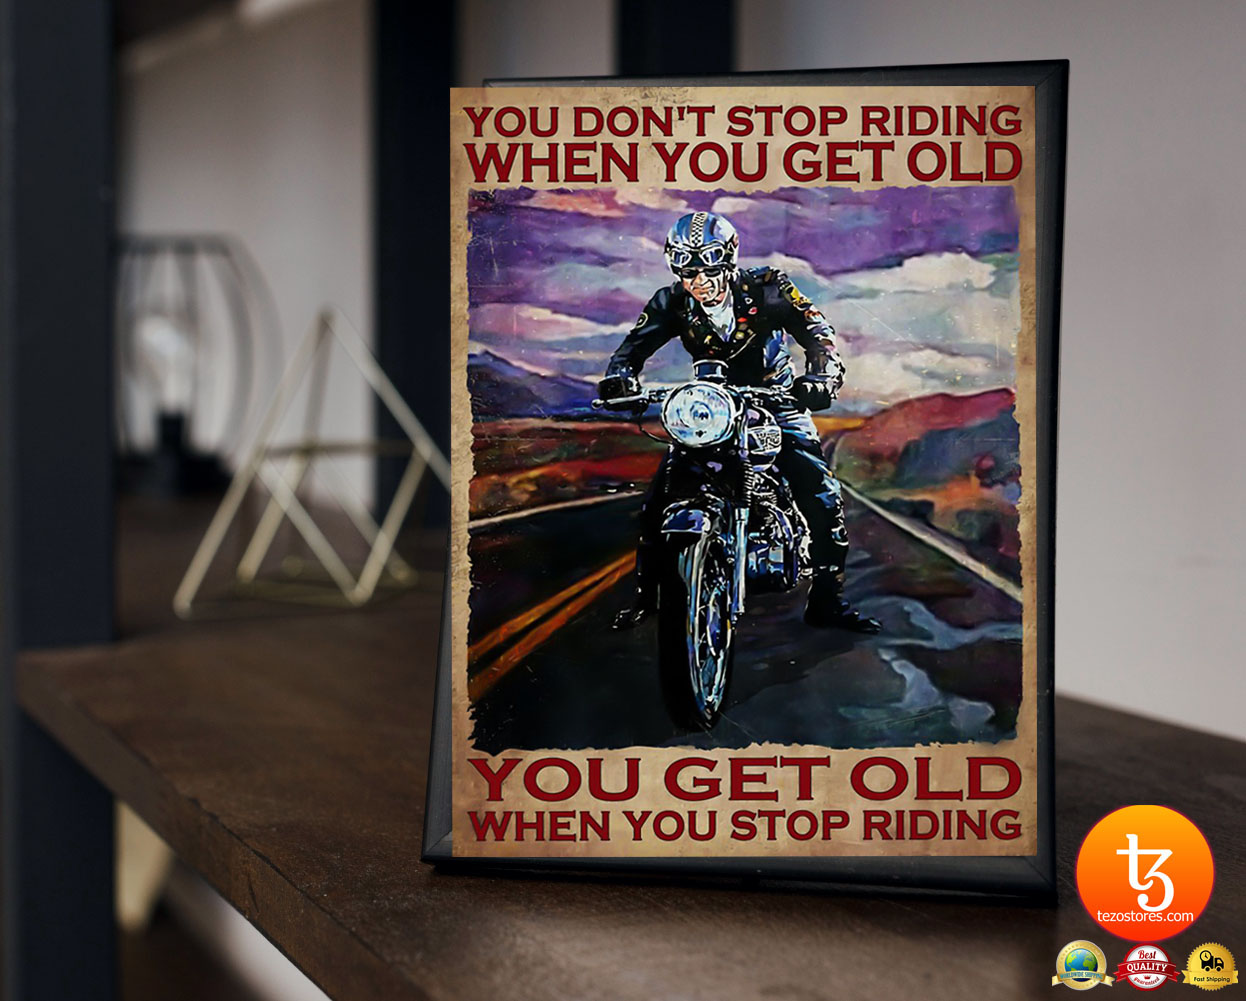 You don't stop riding when you get old poster 2